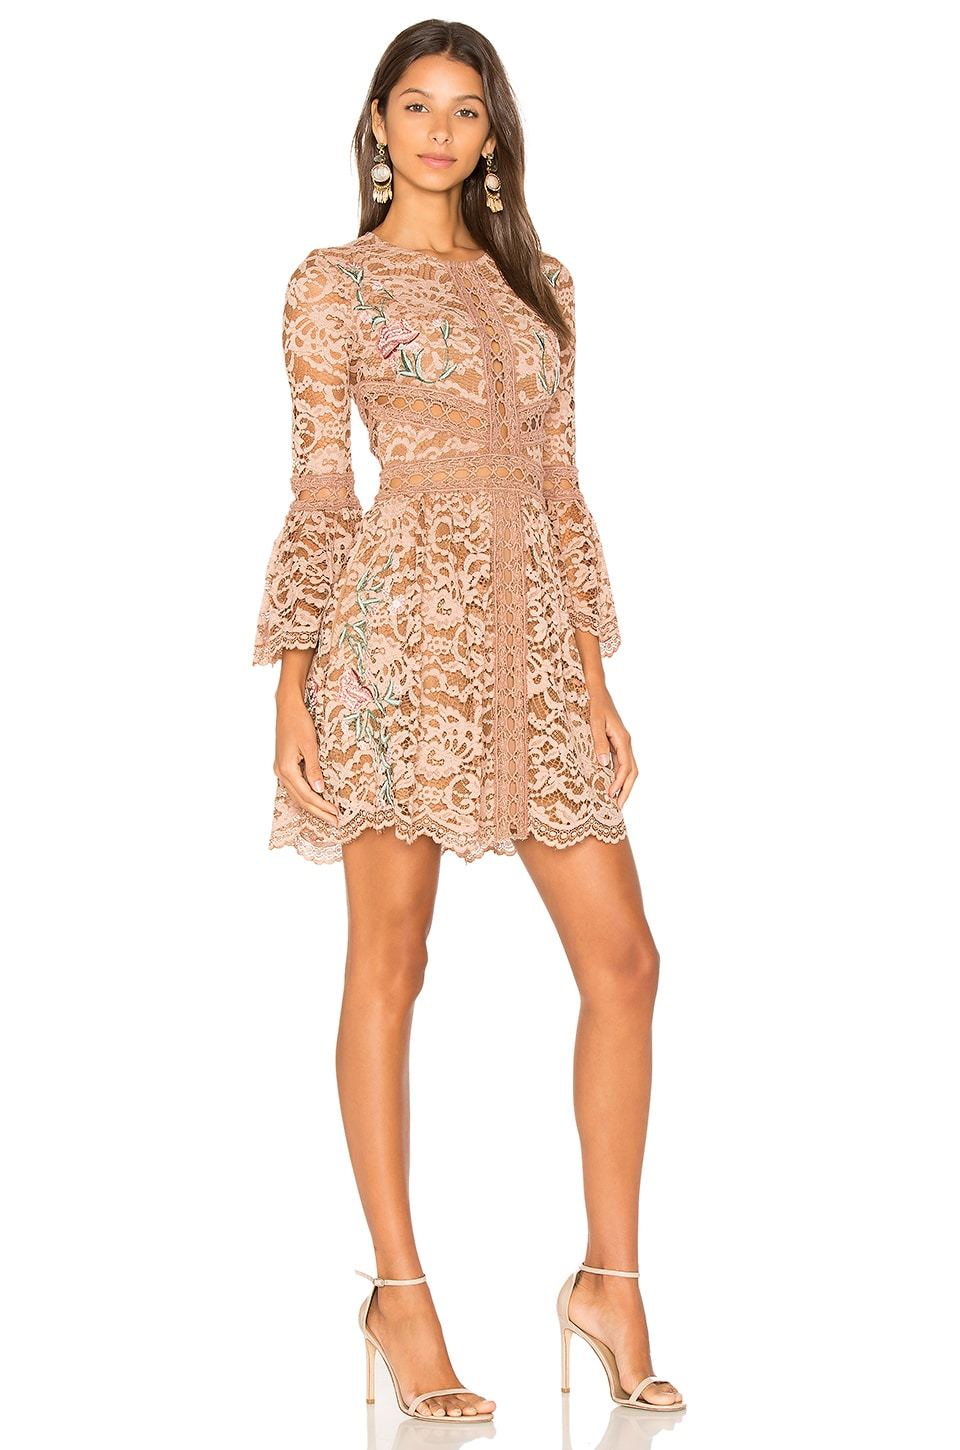 X by NBD Kyle Dress in Nude